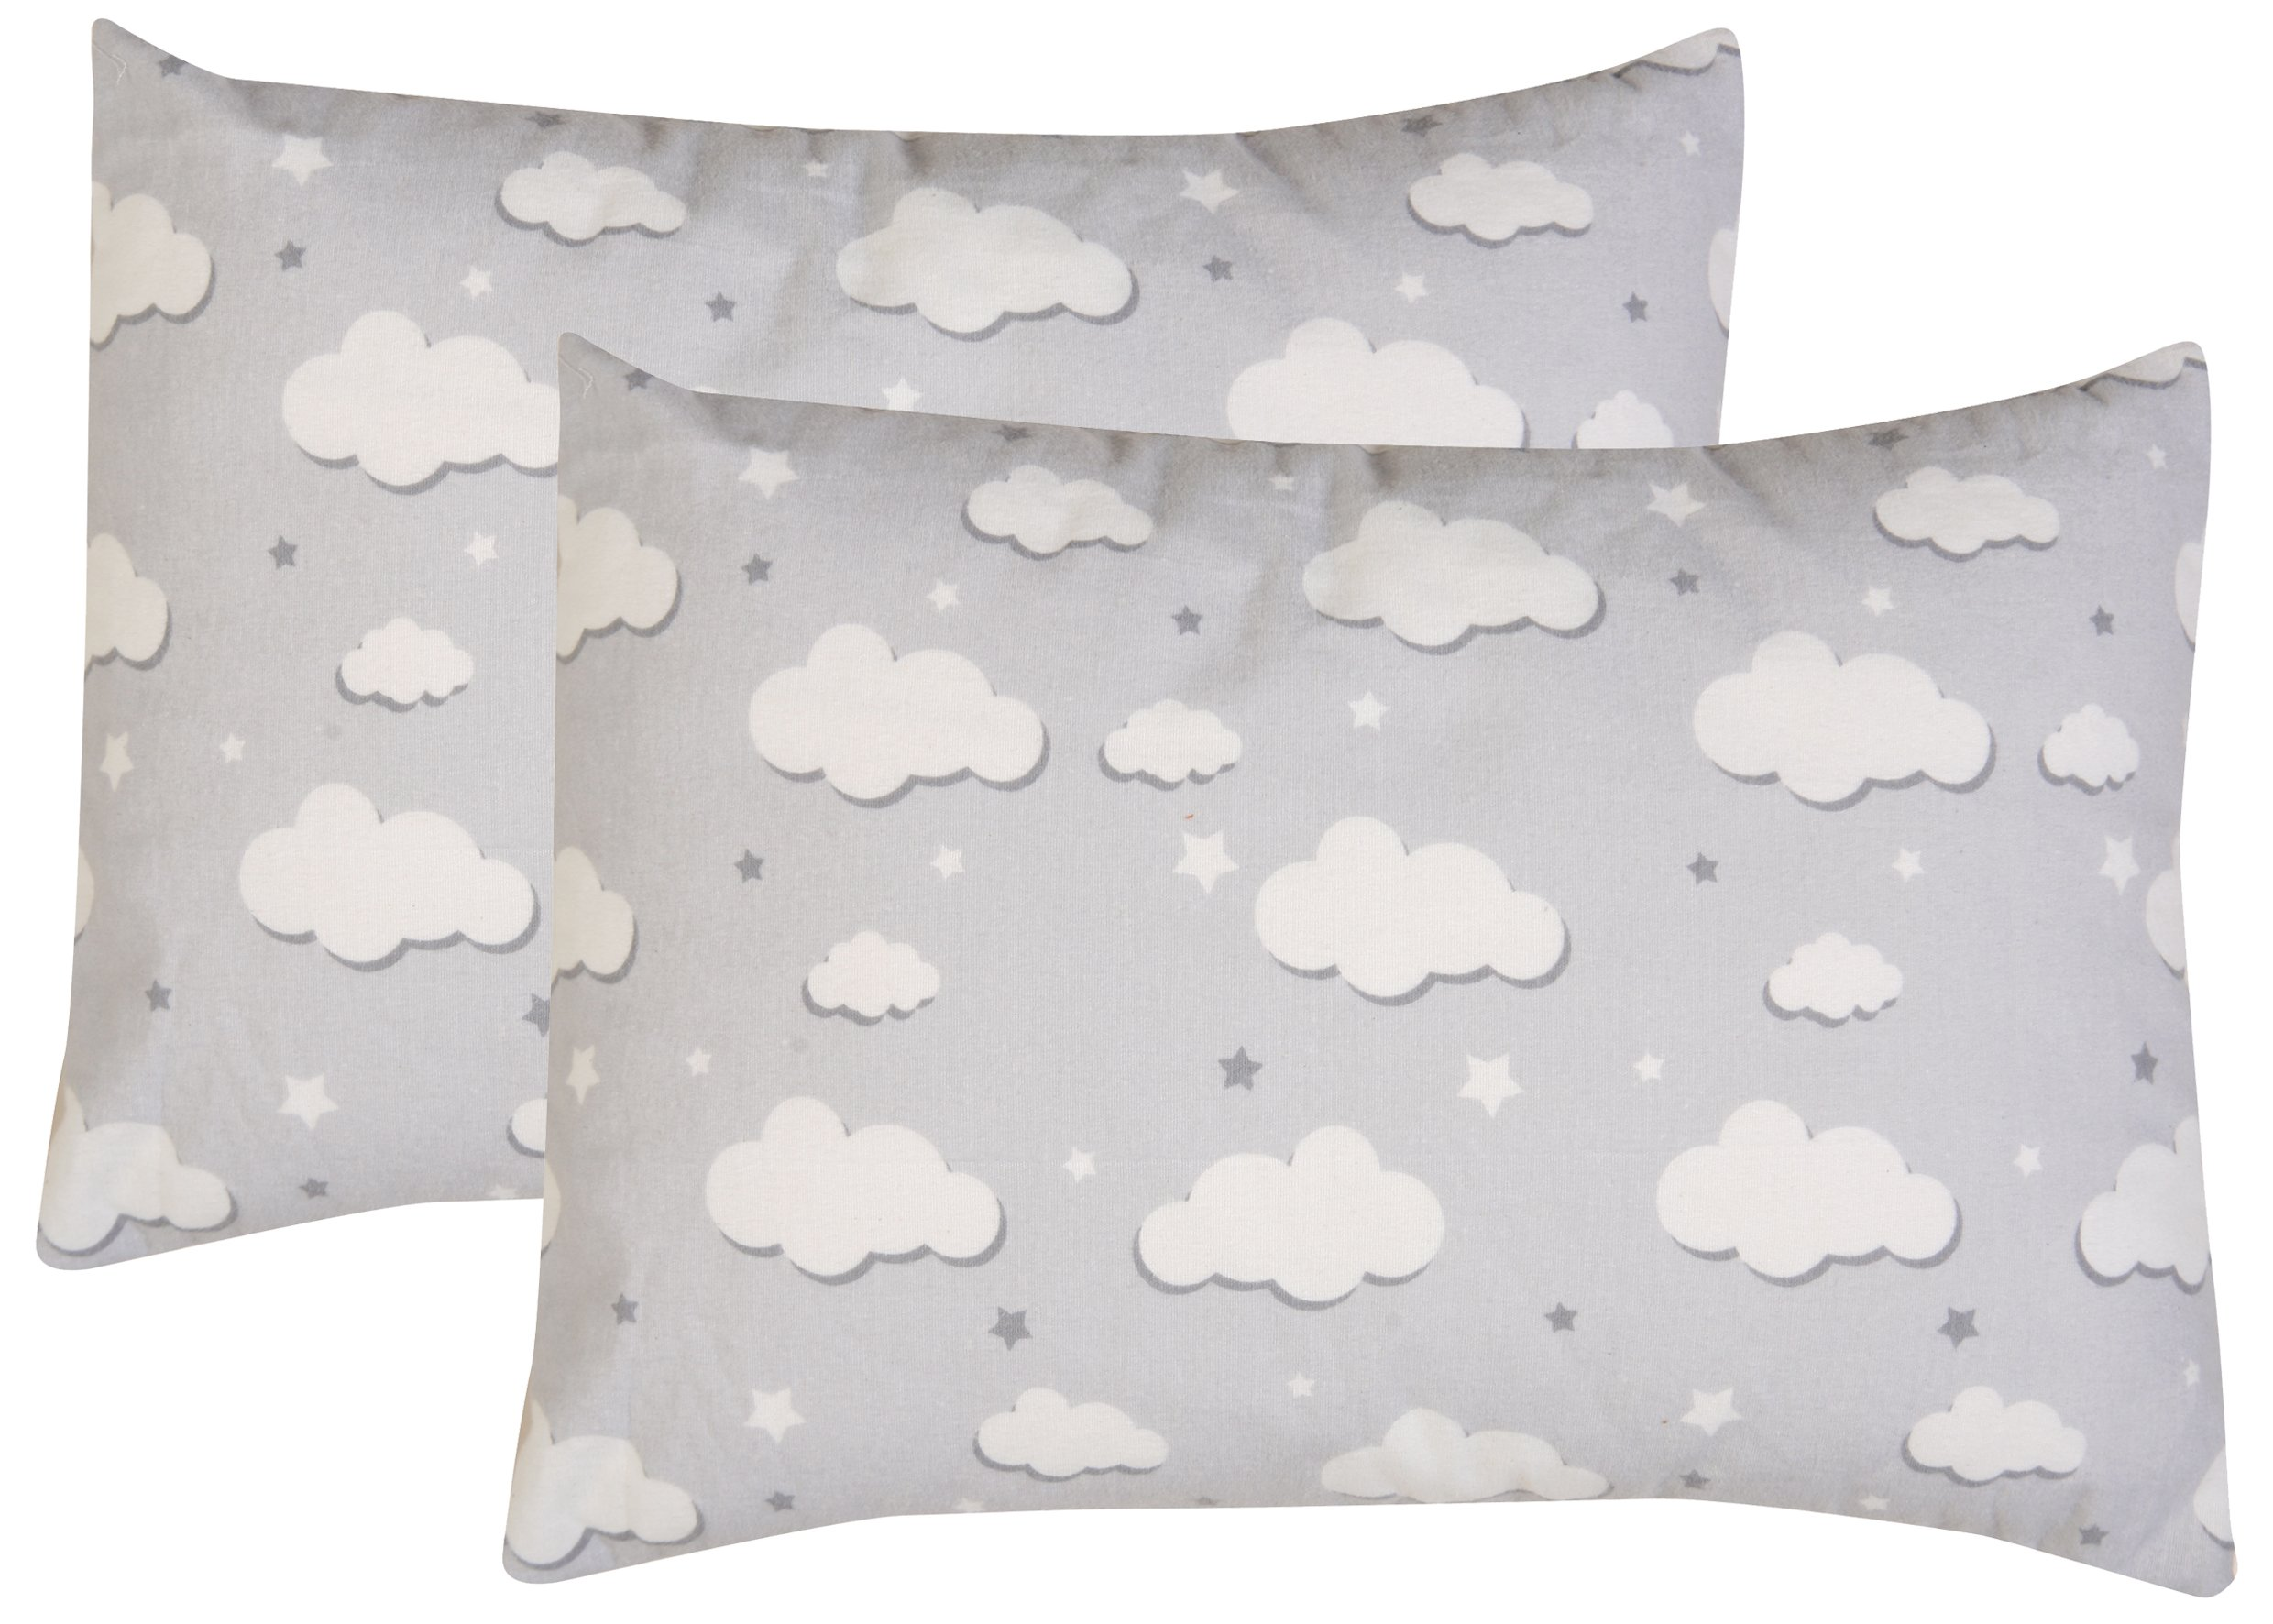 Toddler Pillowcase, 2 pack- Premium Cotton Flannel, SOFT & BREATHABLE, toddler pillowcase 13x18, Clouds